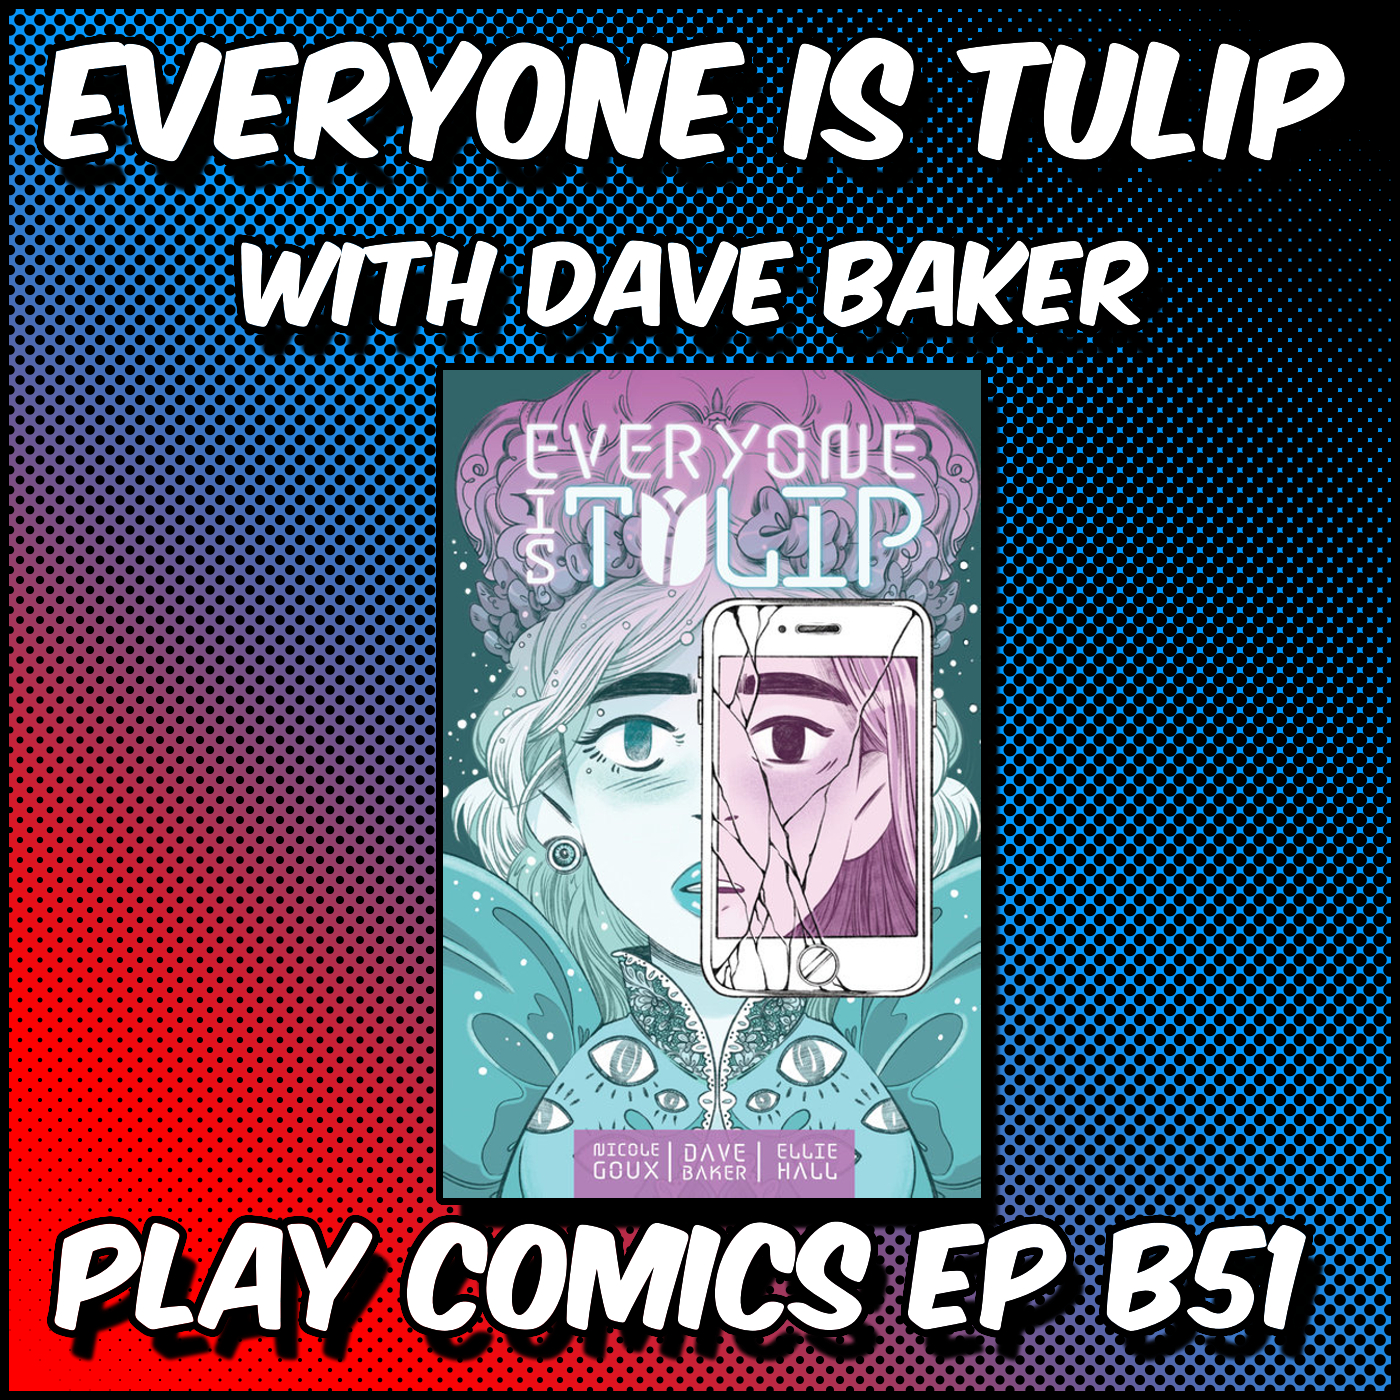 Everyone is Tulip with Dave Baker